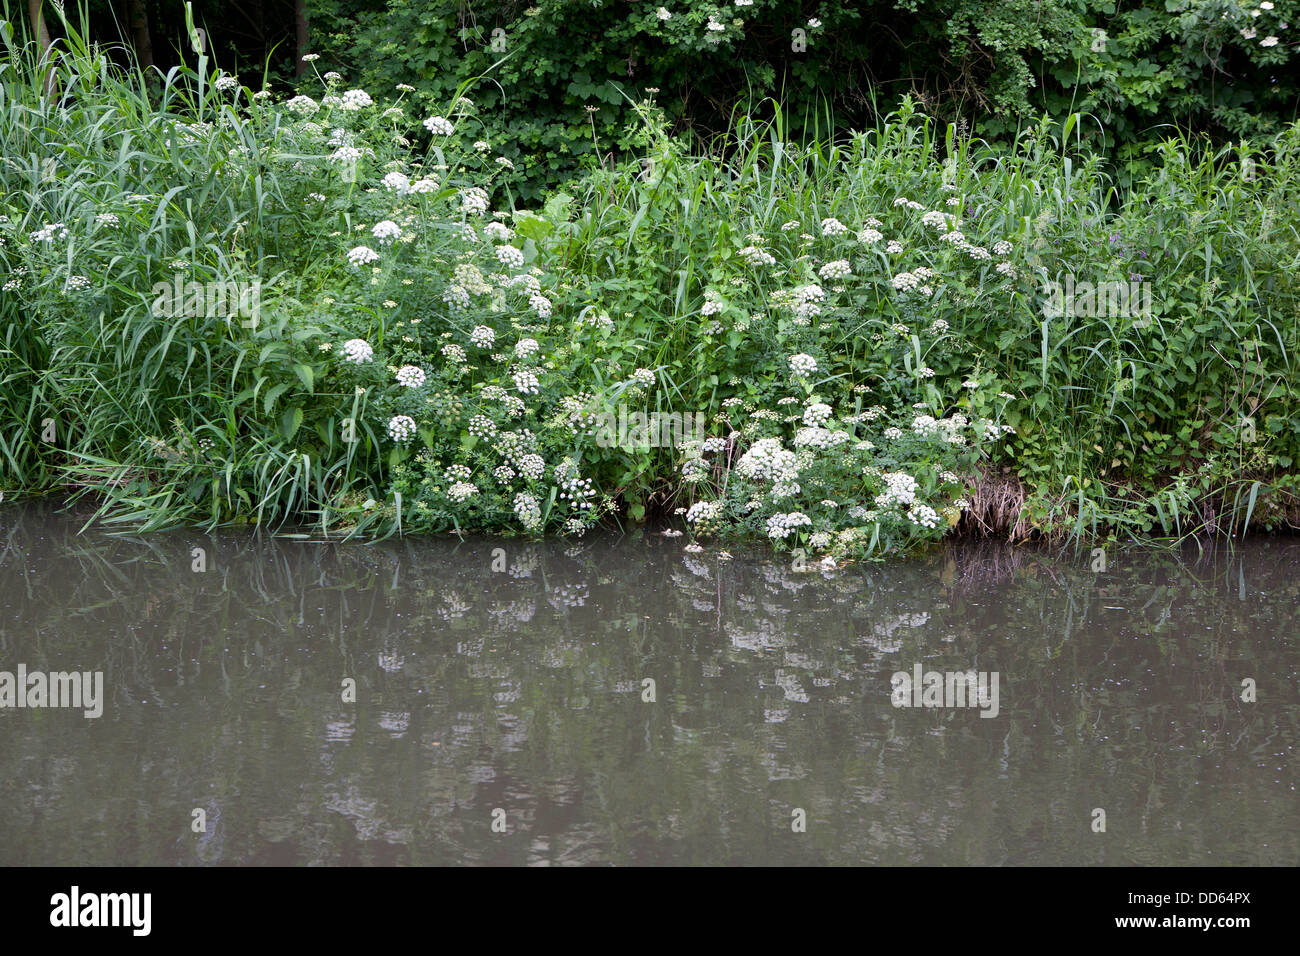 Cow parsley and other vegetation at the edge of a Canal, the plants are reflected in the water. - Stock Image